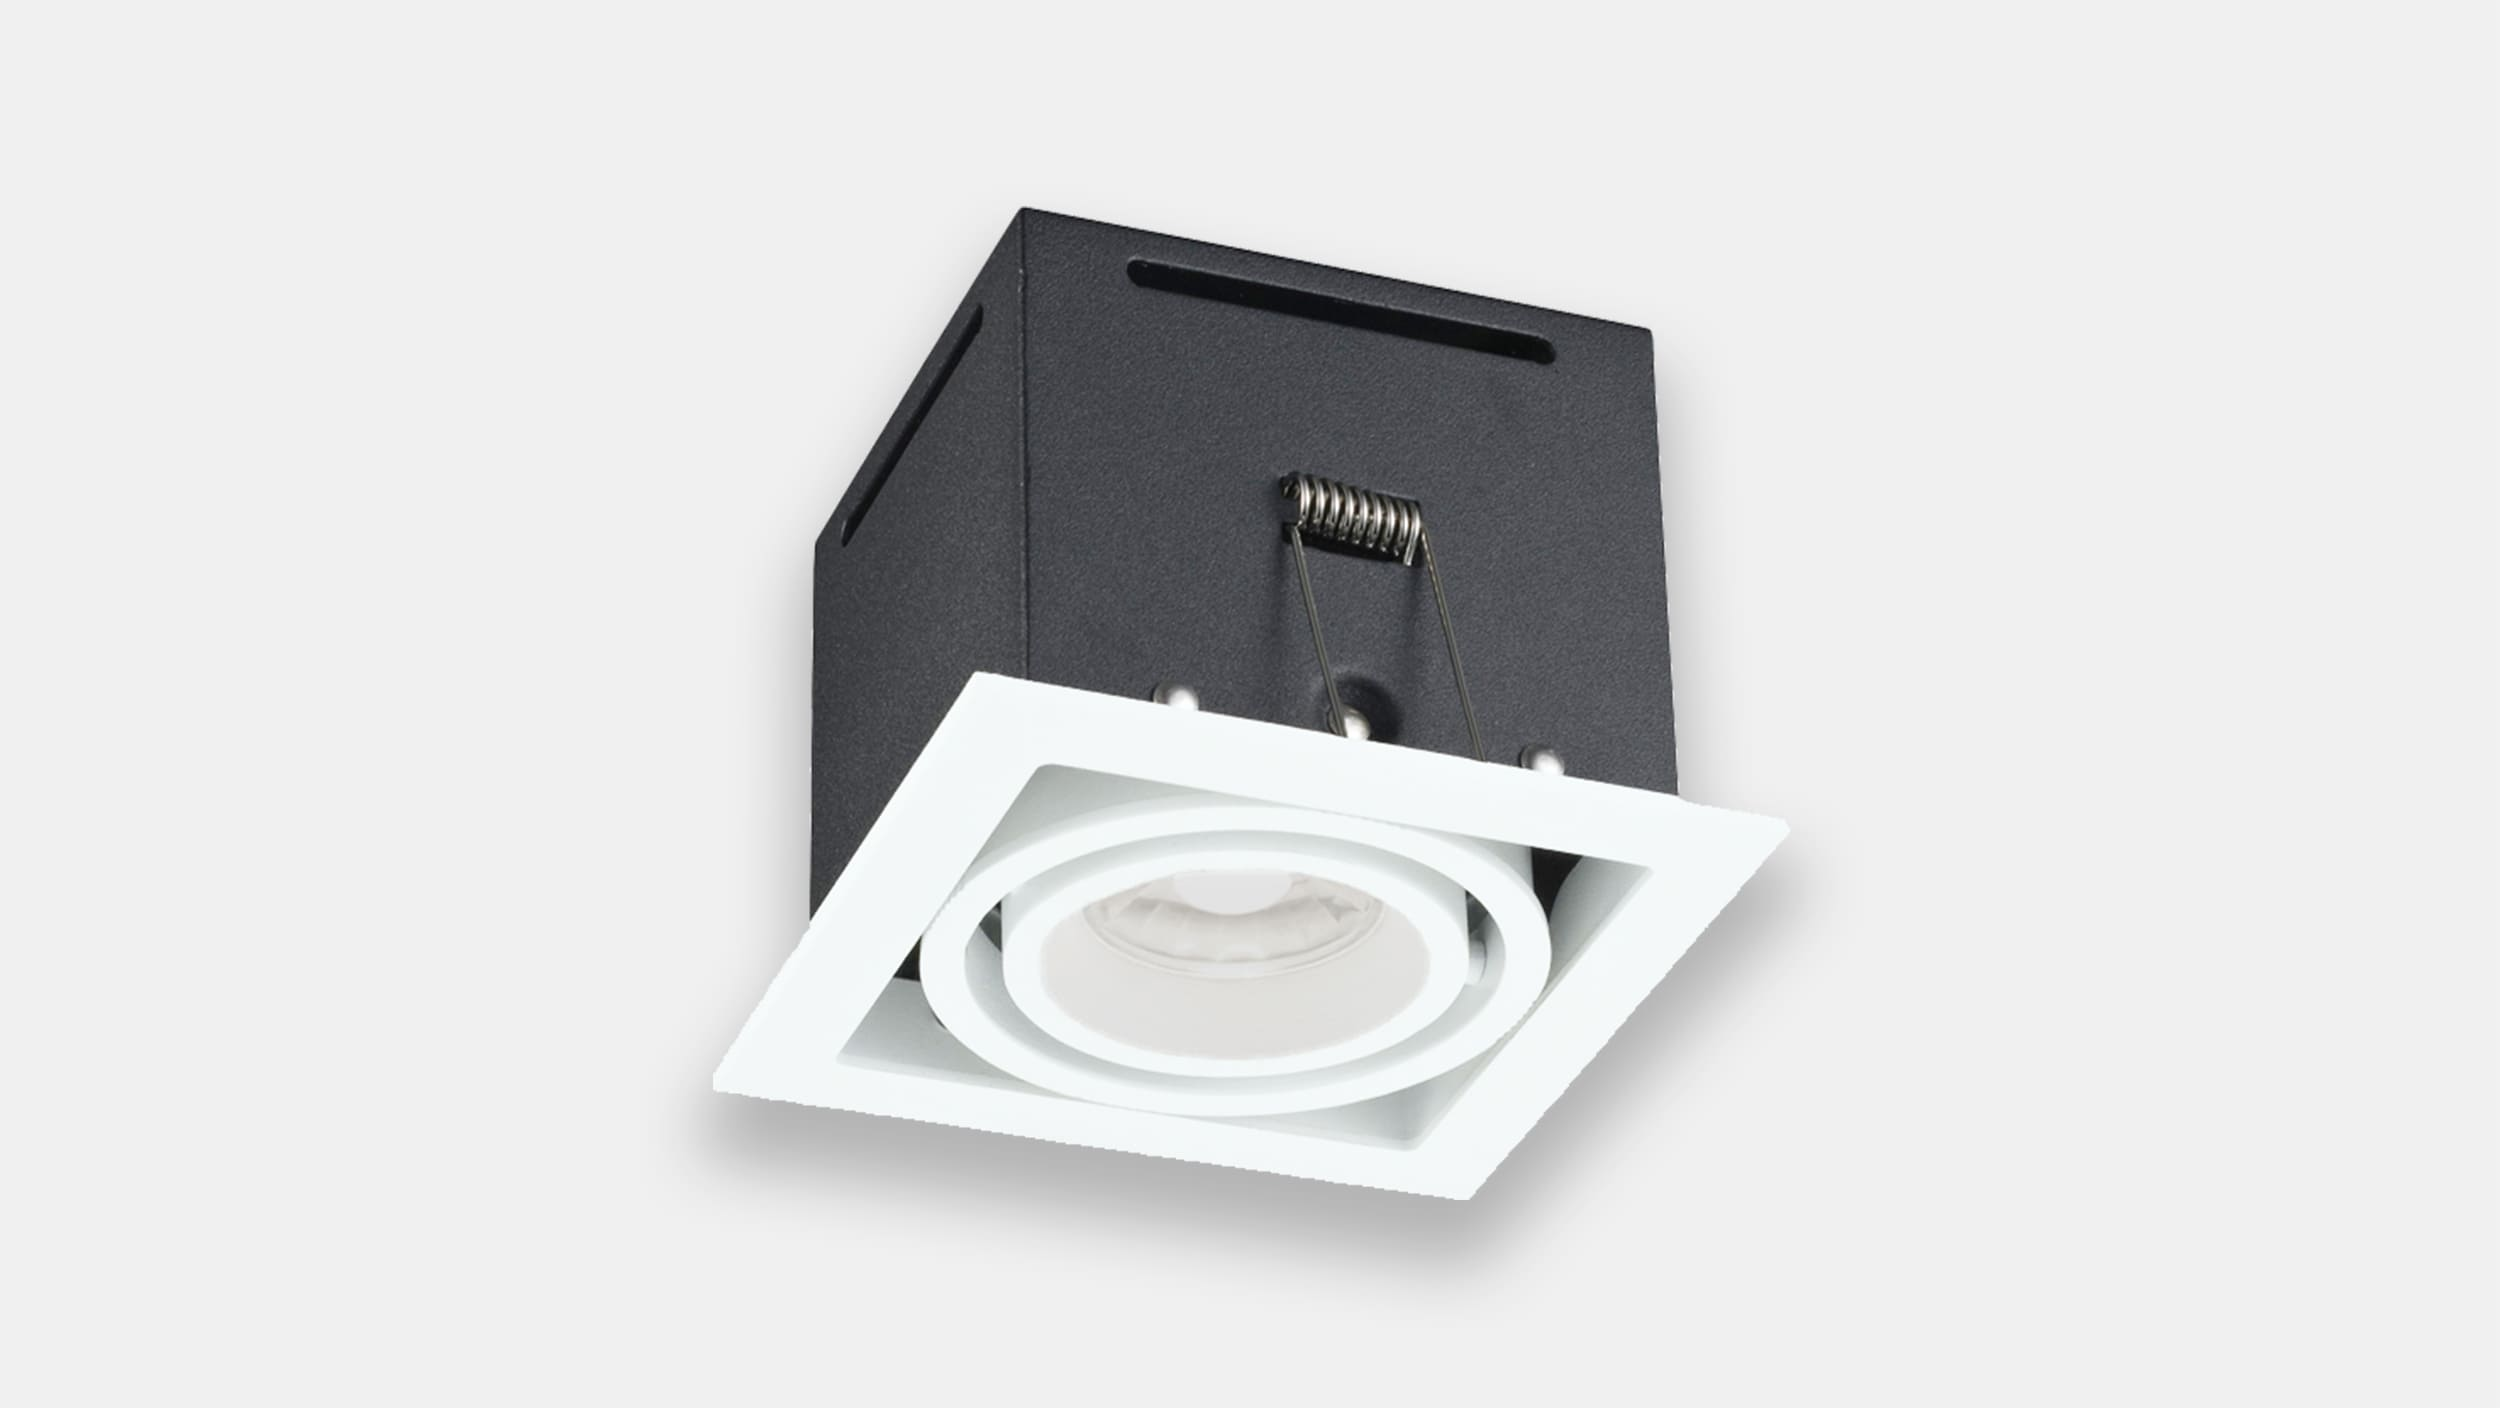 Square adjustable Spot light